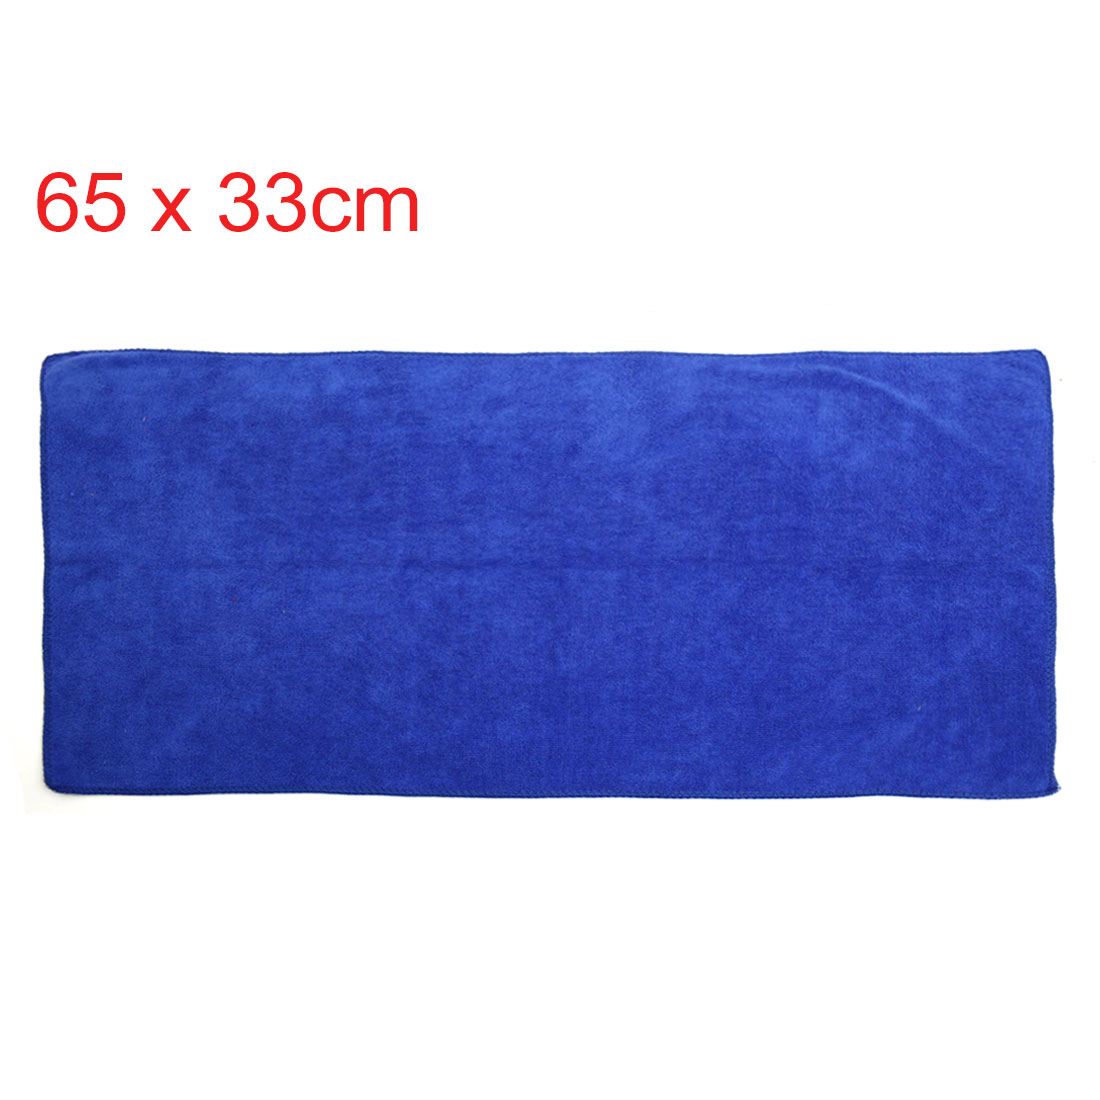 3 Pcs High Absorbing Microfiber Fabric, Polyester, Polymide Car Clean Cloth Towel No-scratched for Car Body - image 1 of 3